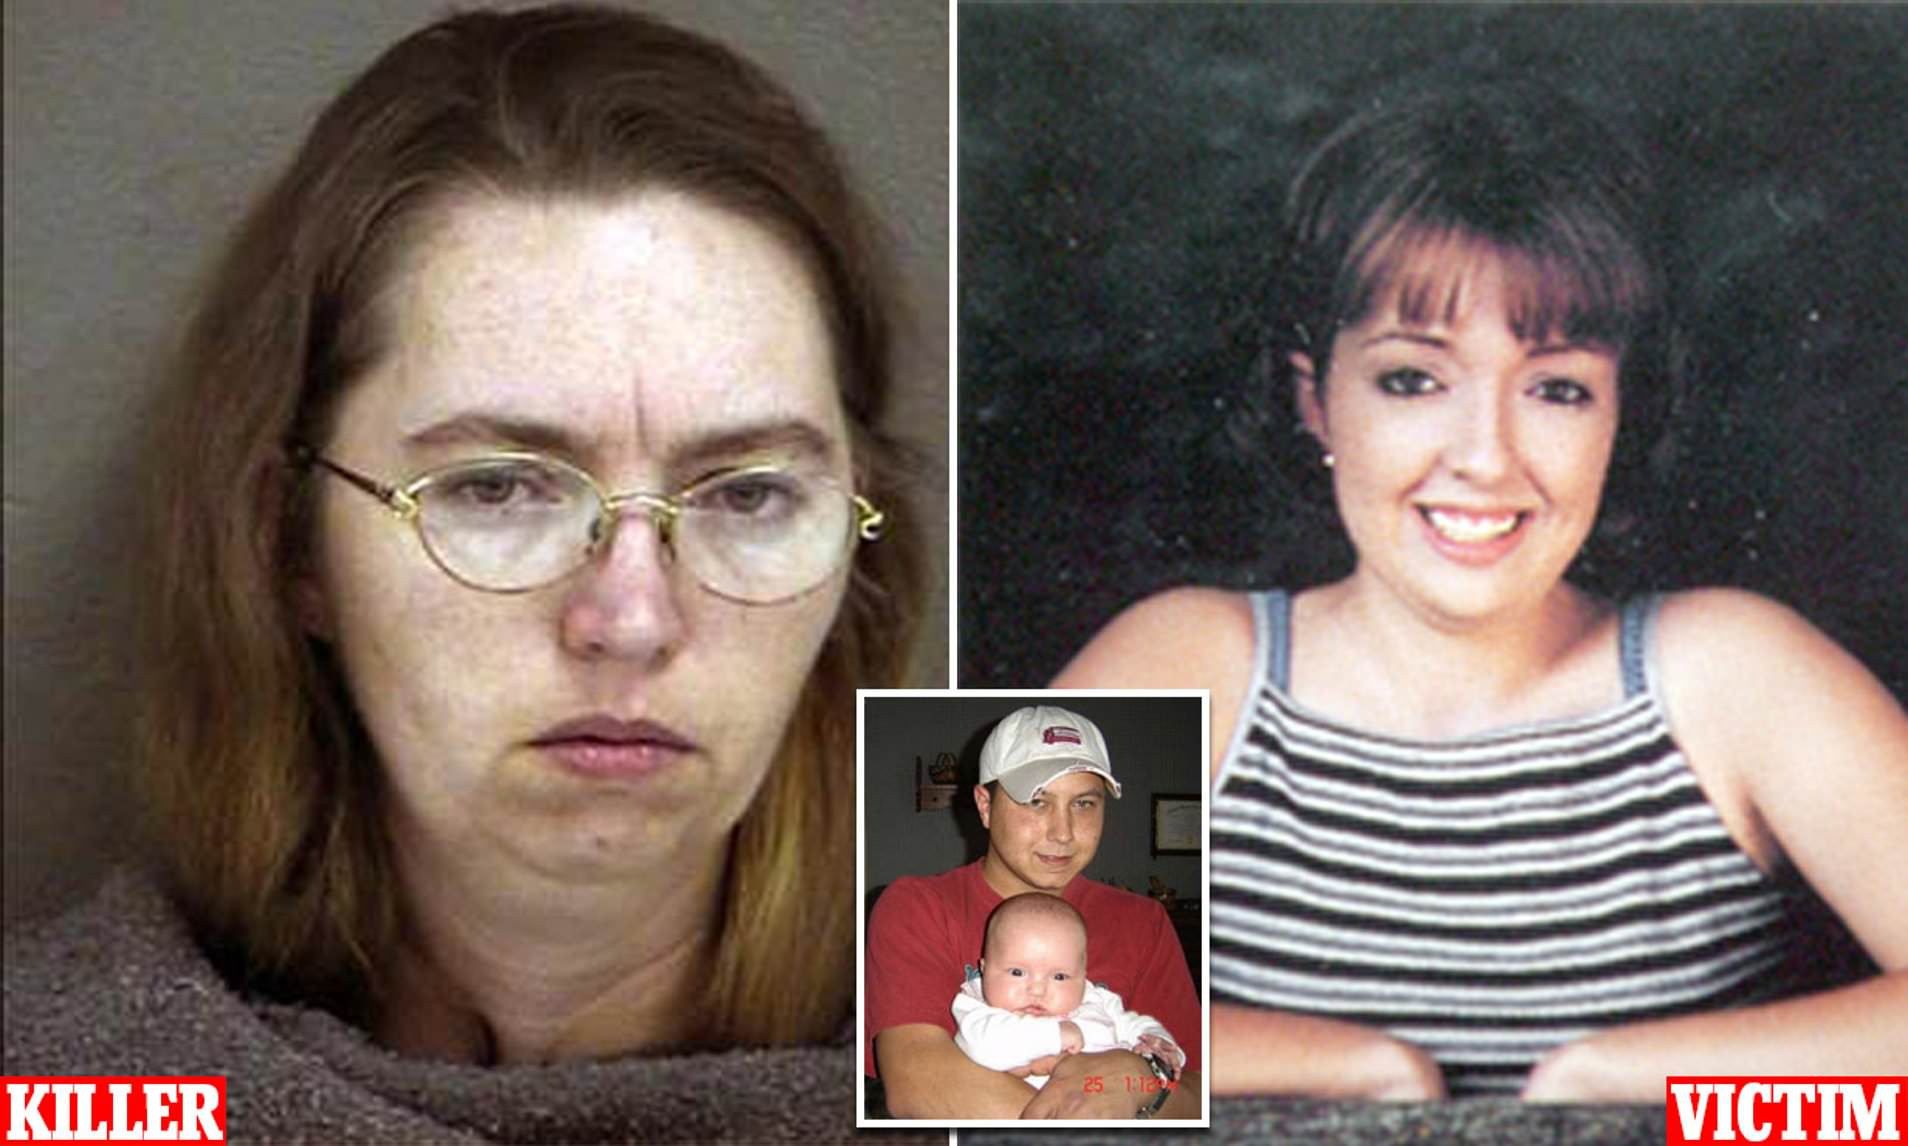 Female murderer set to be 1st woman to be executed by US in almost 70 years